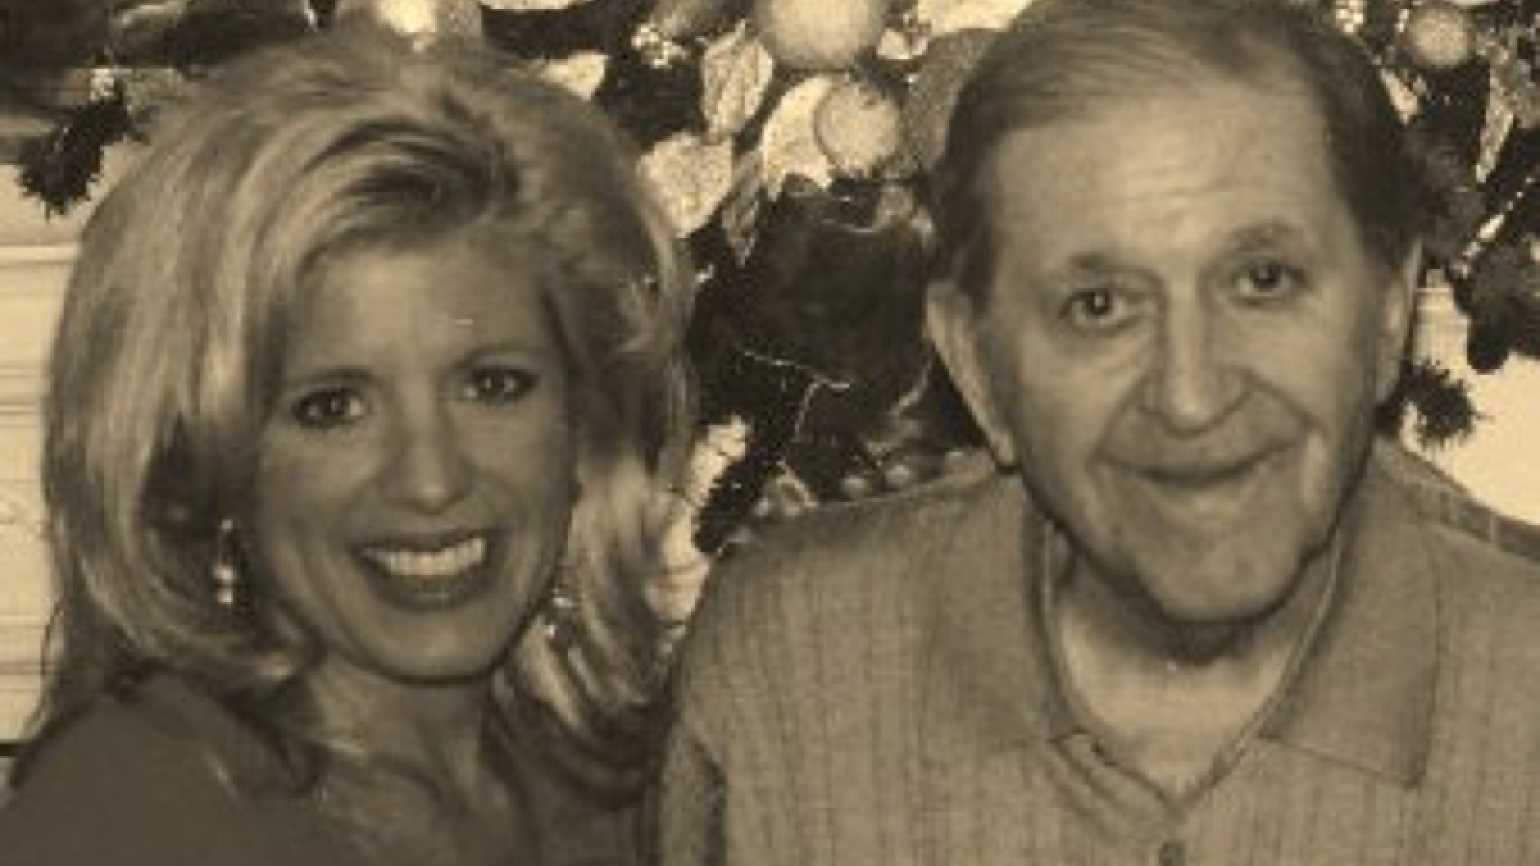 Inspirational Stories blogger Michelle Medlock Adams and her father